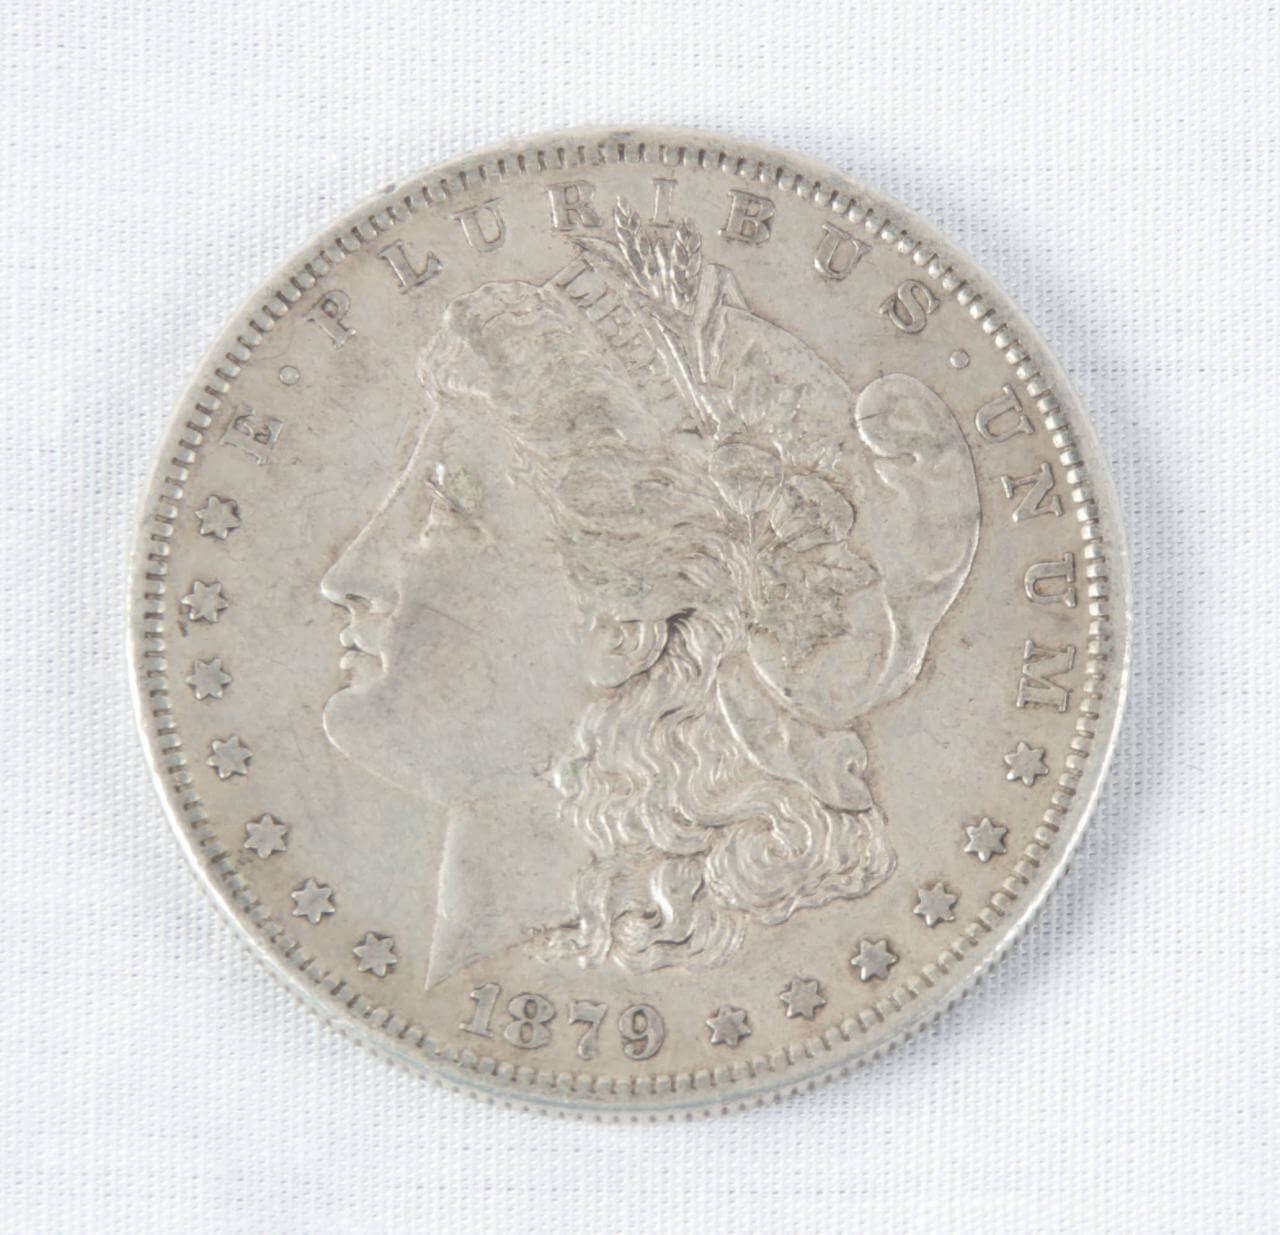 1879-O Morgan Liberty Silver Dollar (New Orleans)